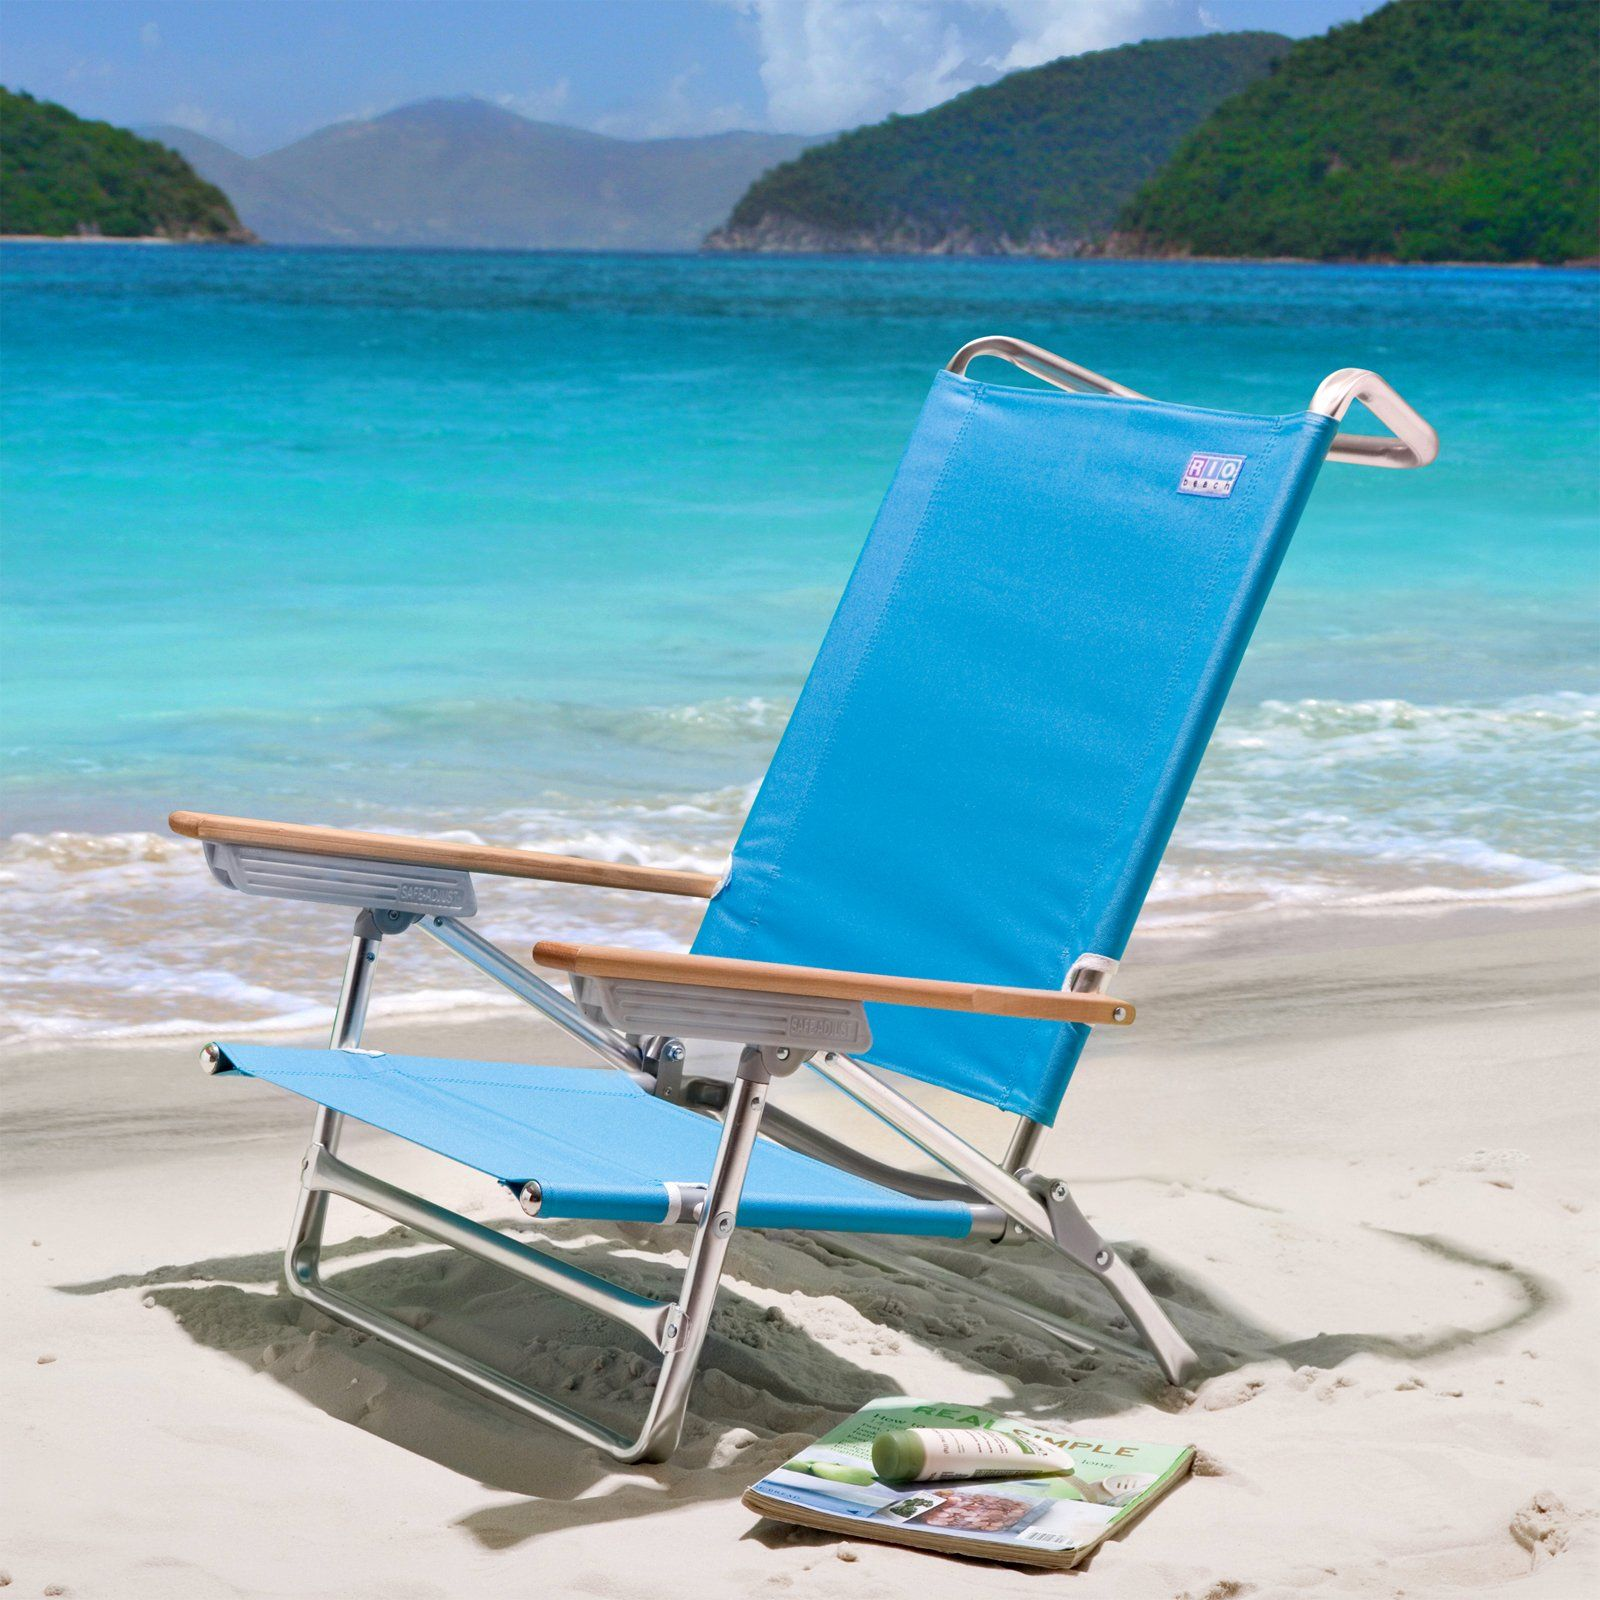 Charmant Rio Turquoise Deluxe Sand Beach Chair